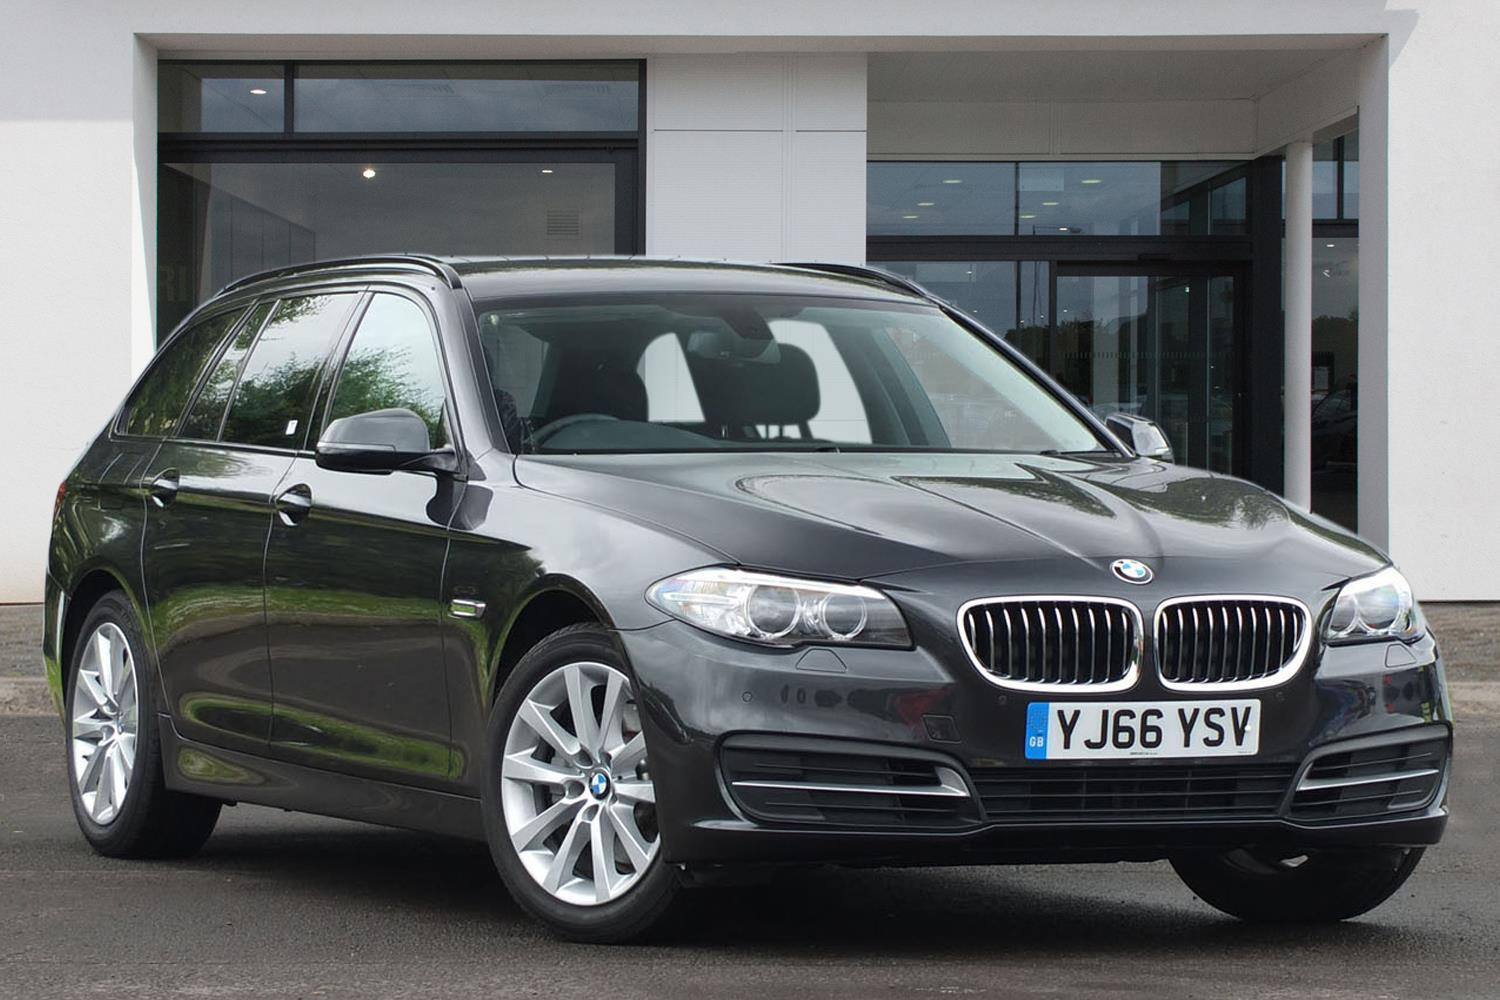 BMW 5 Series Touring YJ66YSV - Image 7